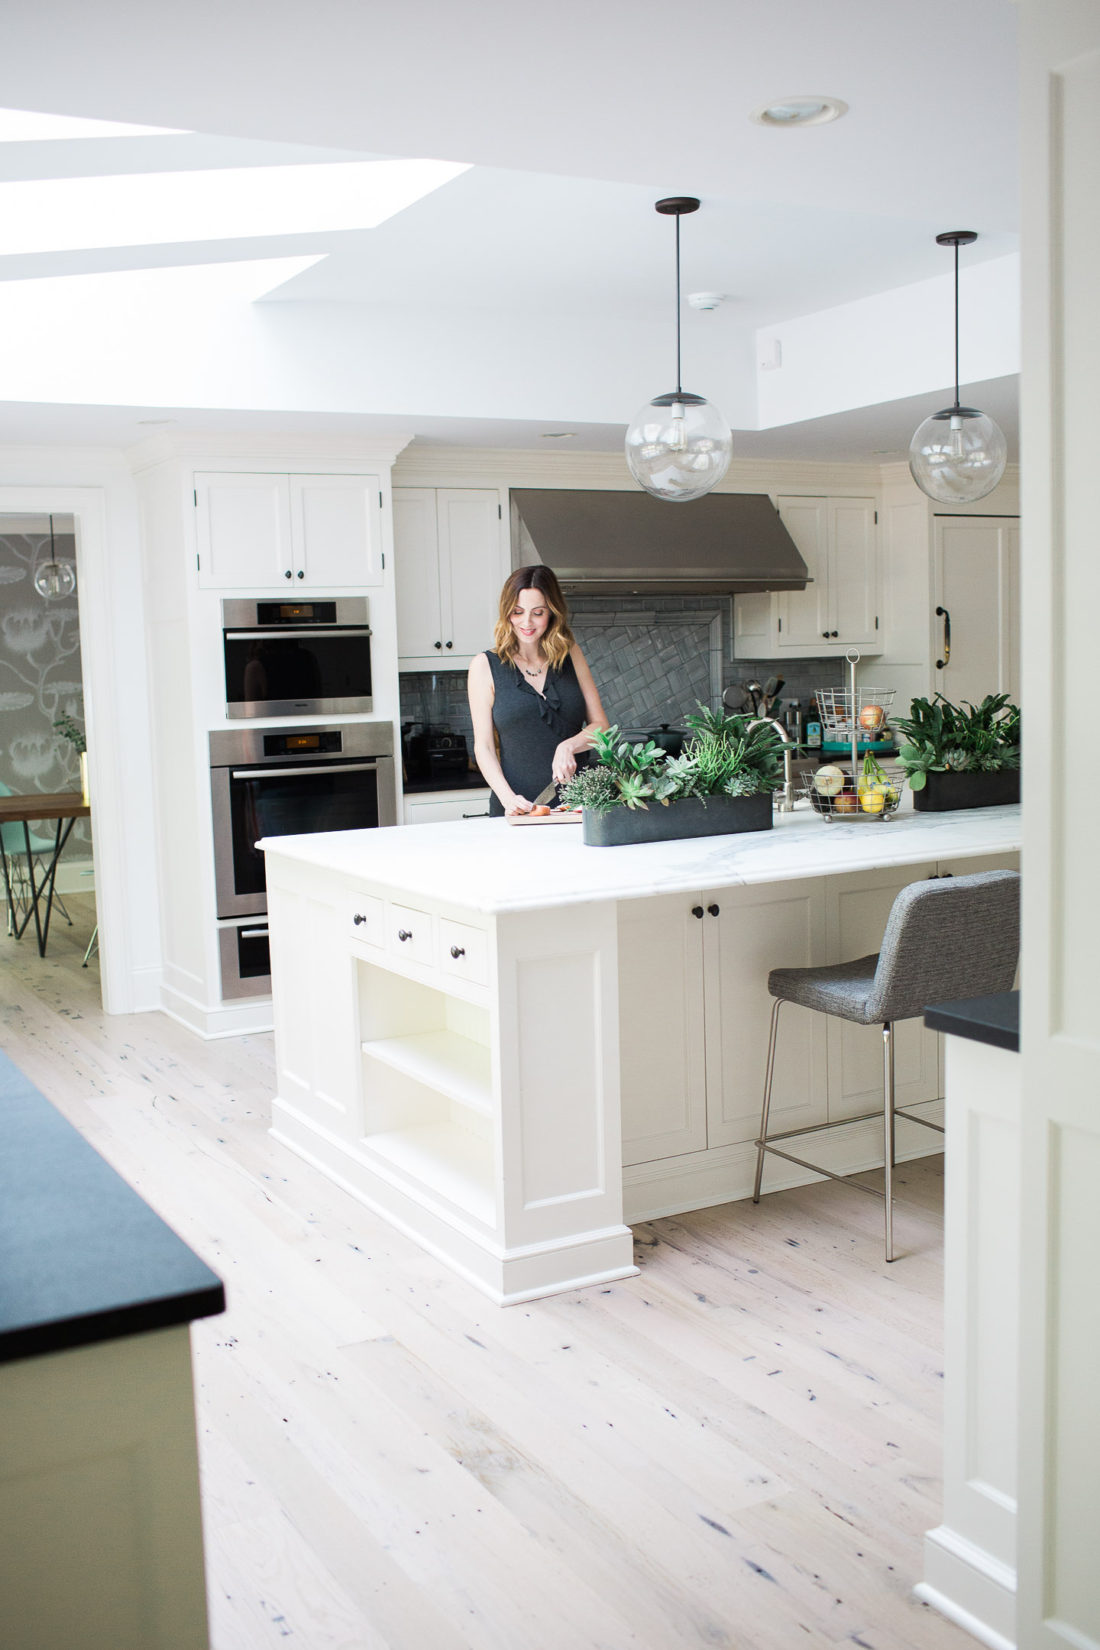 Eva Amurri Martin of lifestyle blog Happily Eva After chopping vegetables in her white and bright kitchen in connecticut with industrial accents